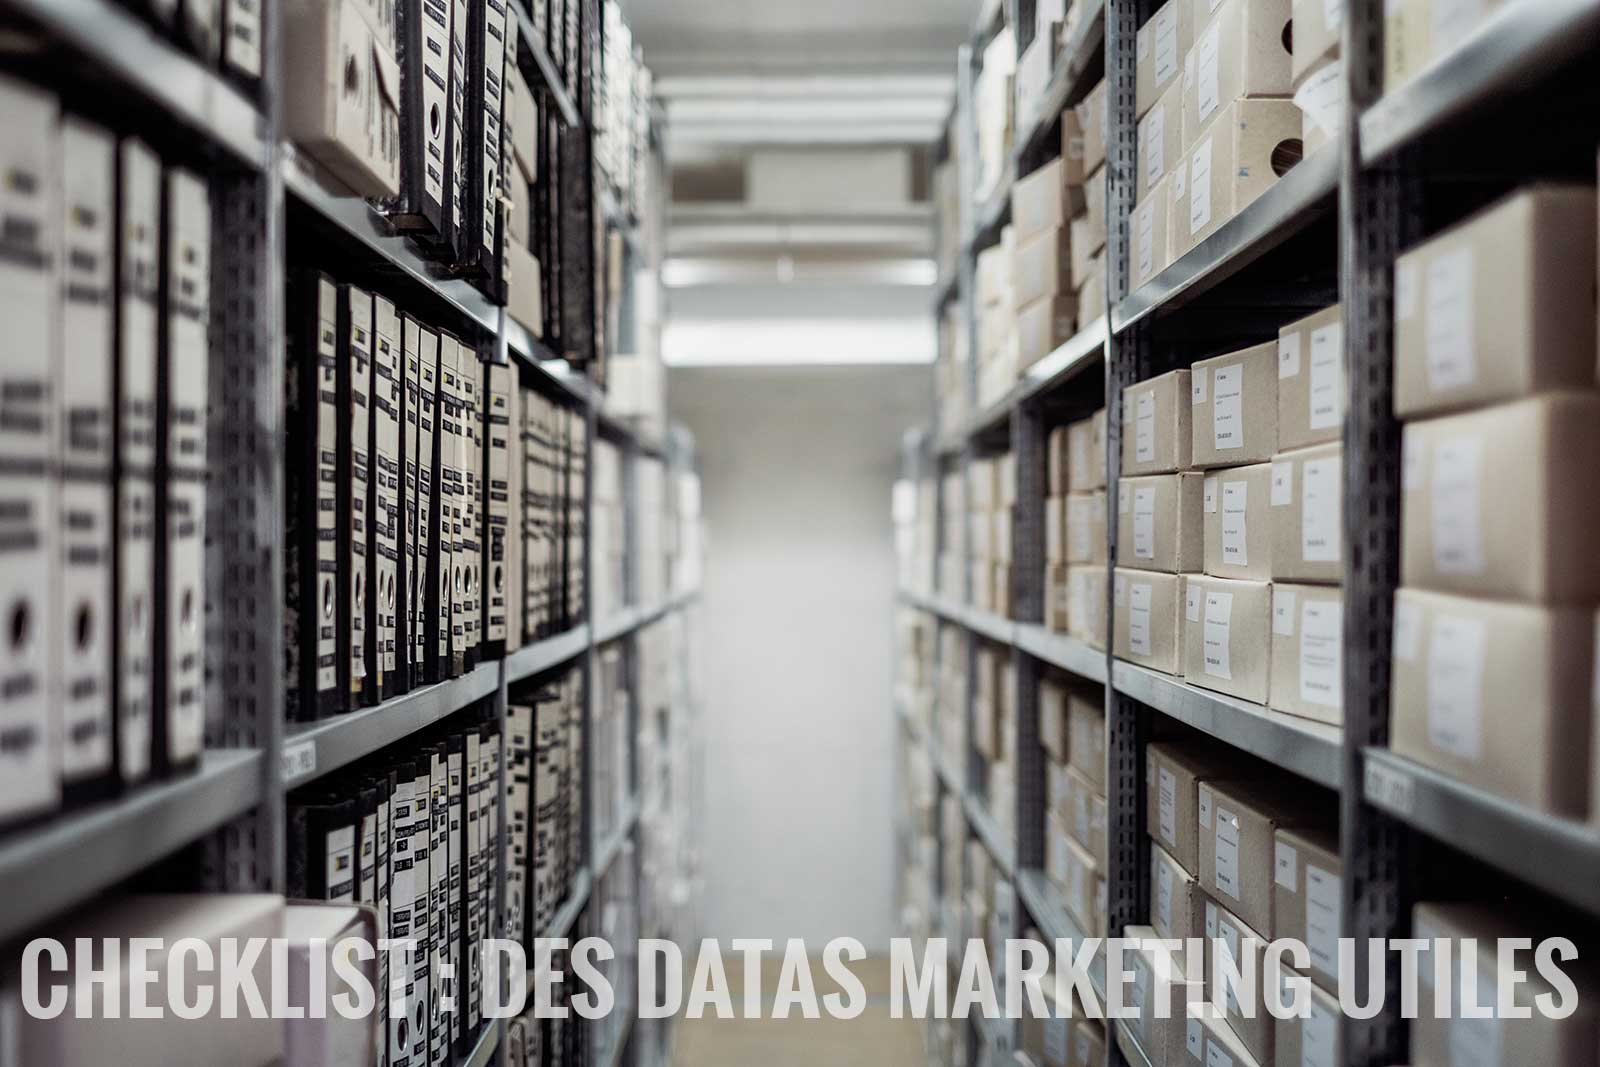 data marketing utiles checklist